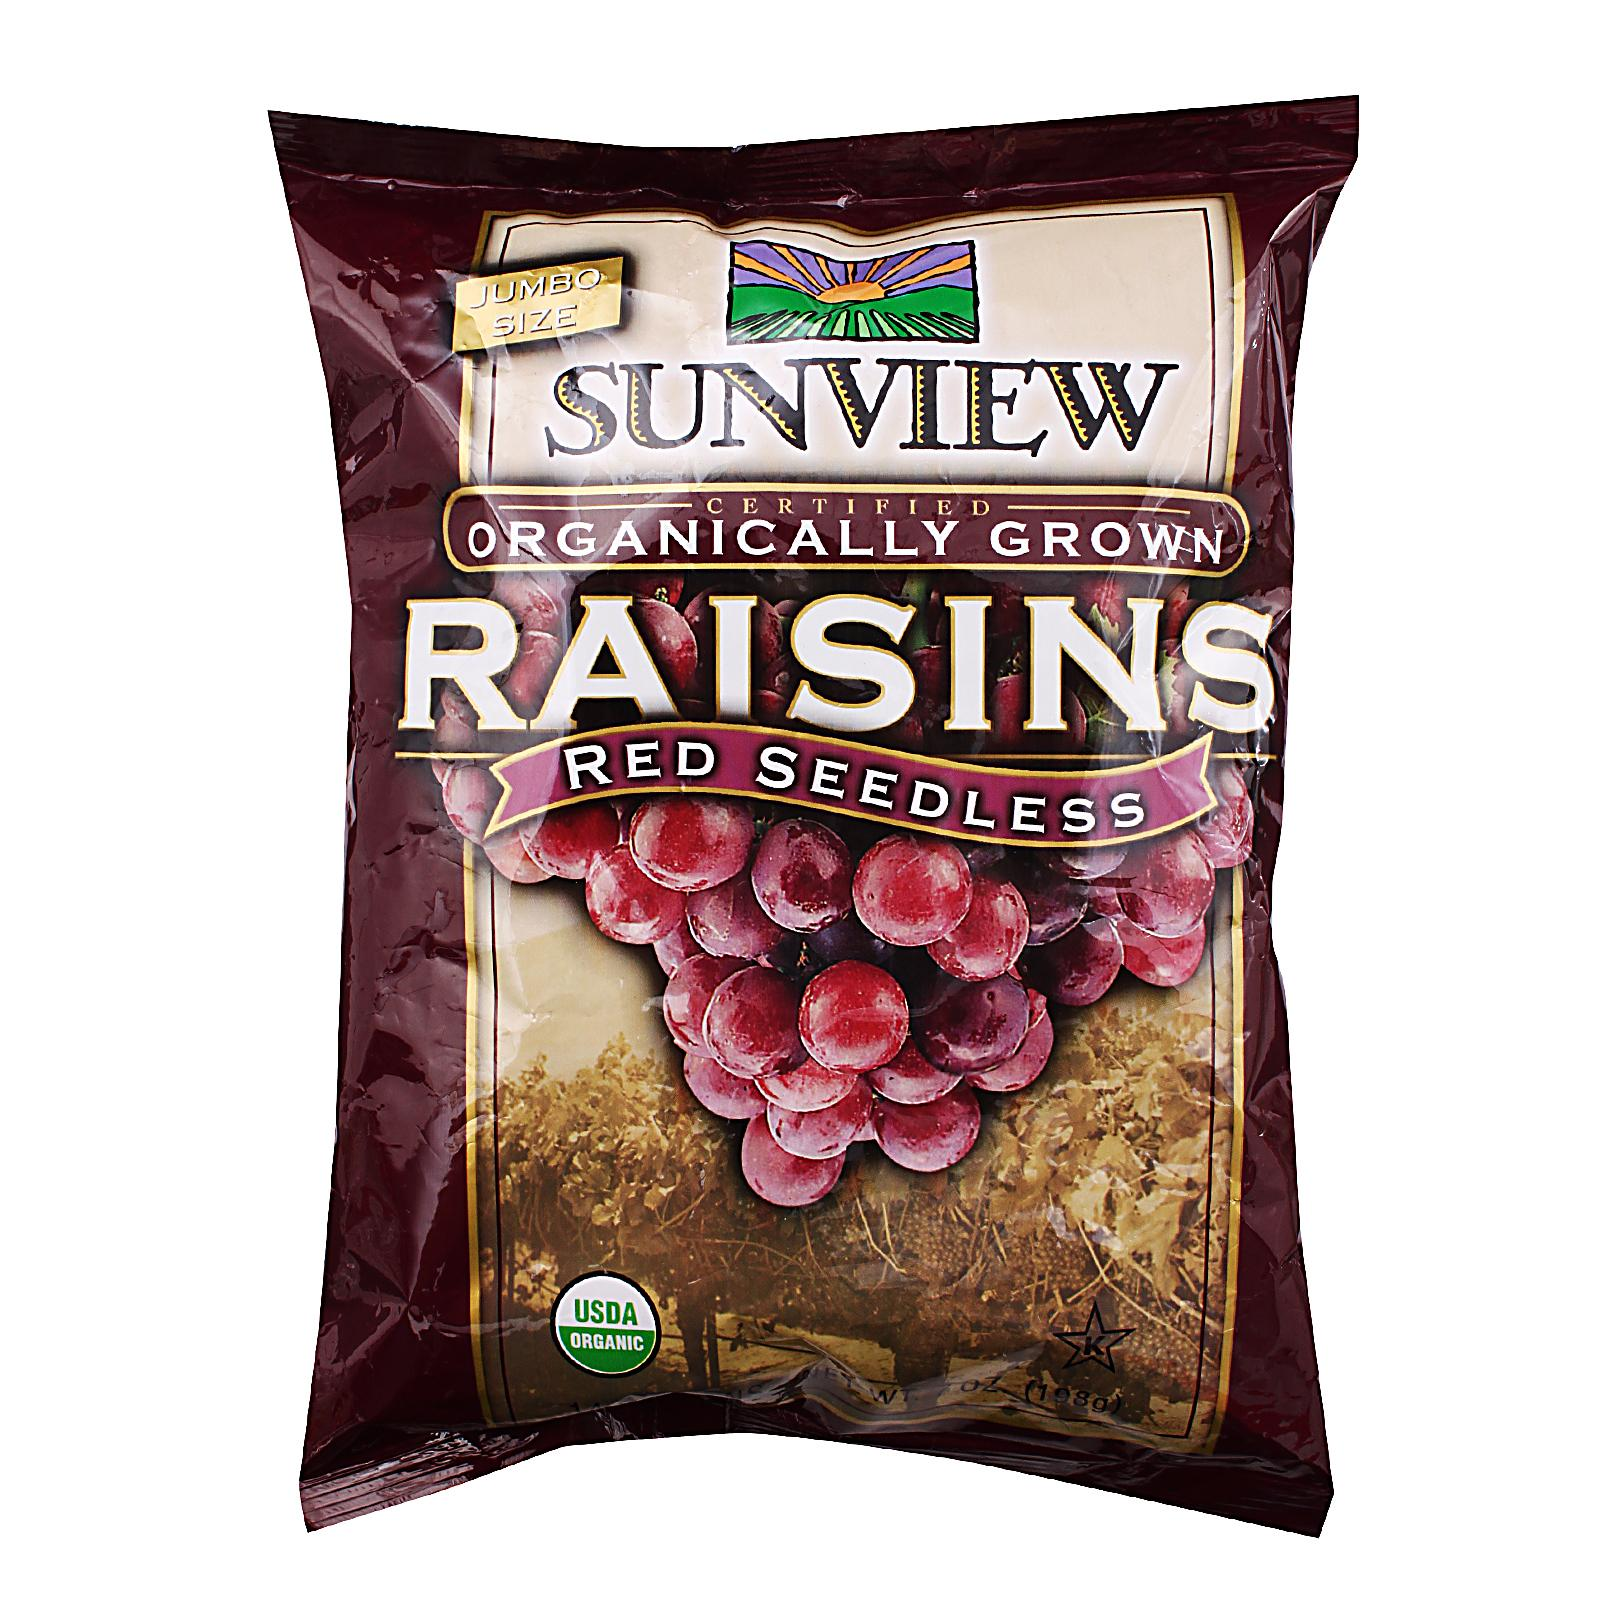 Sunview Organic Red Raisins packet